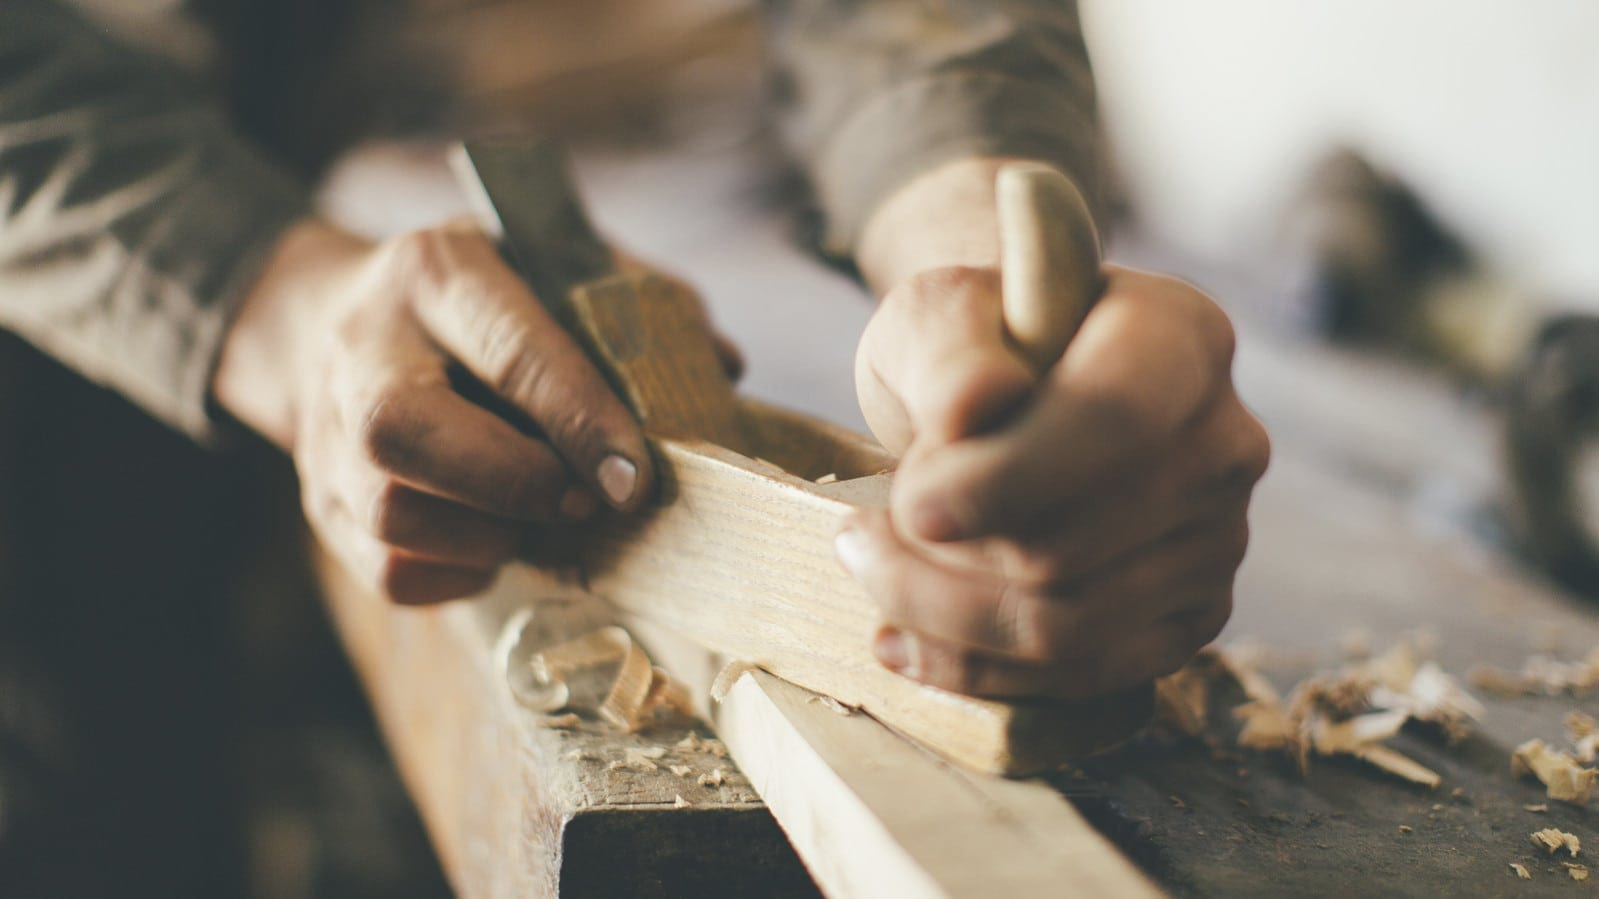 Man Carving Wood Inside A Shop Stock Photo